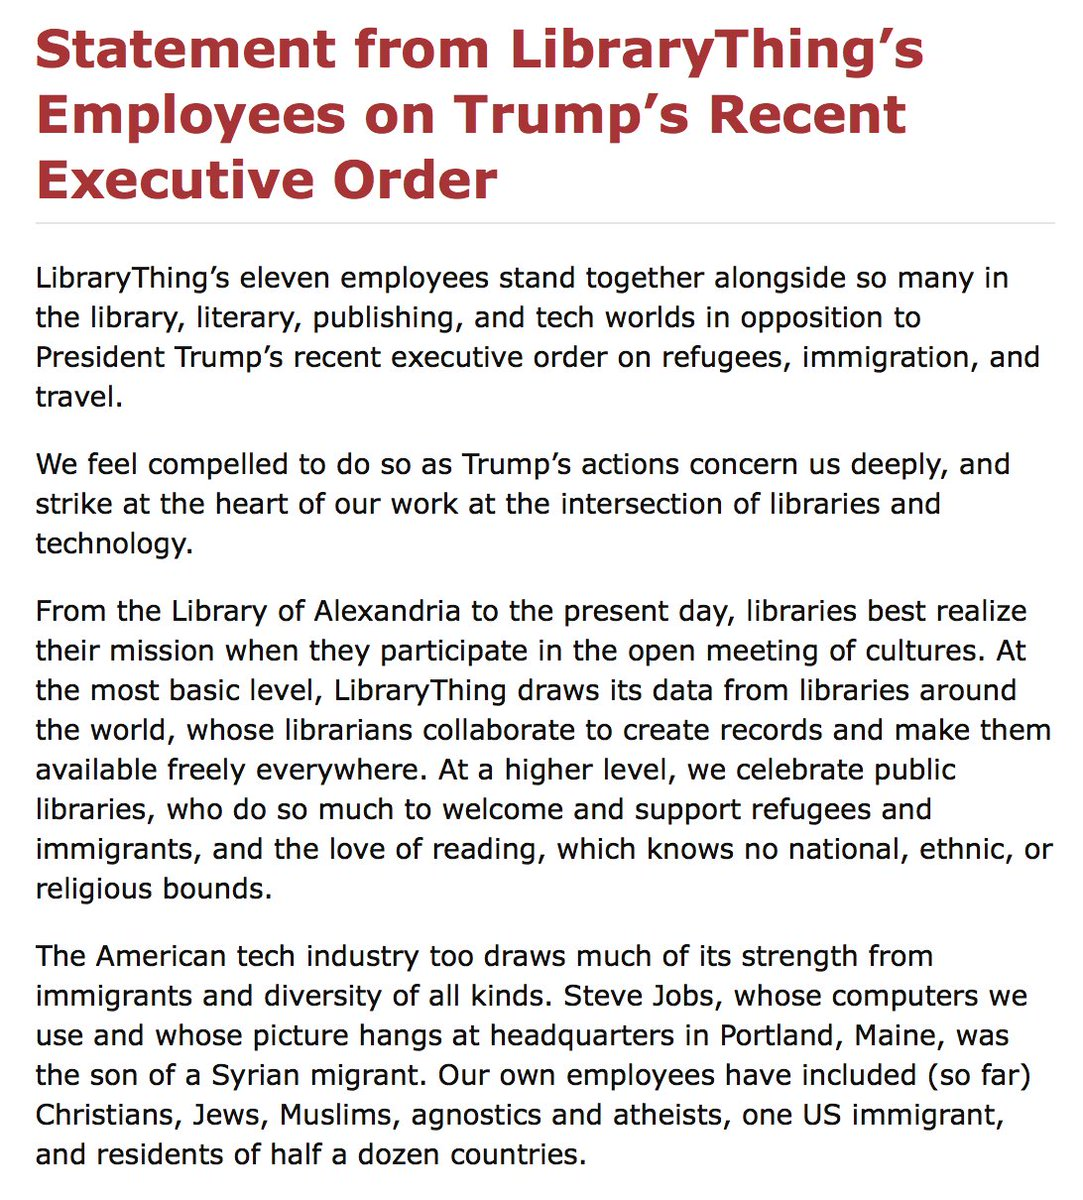 Statement from @LibraryThing's Employees on Trump's Recent Executive Order: https://t.co/Aa5jNPO6dI https://t.co/JUhPGBGuxL